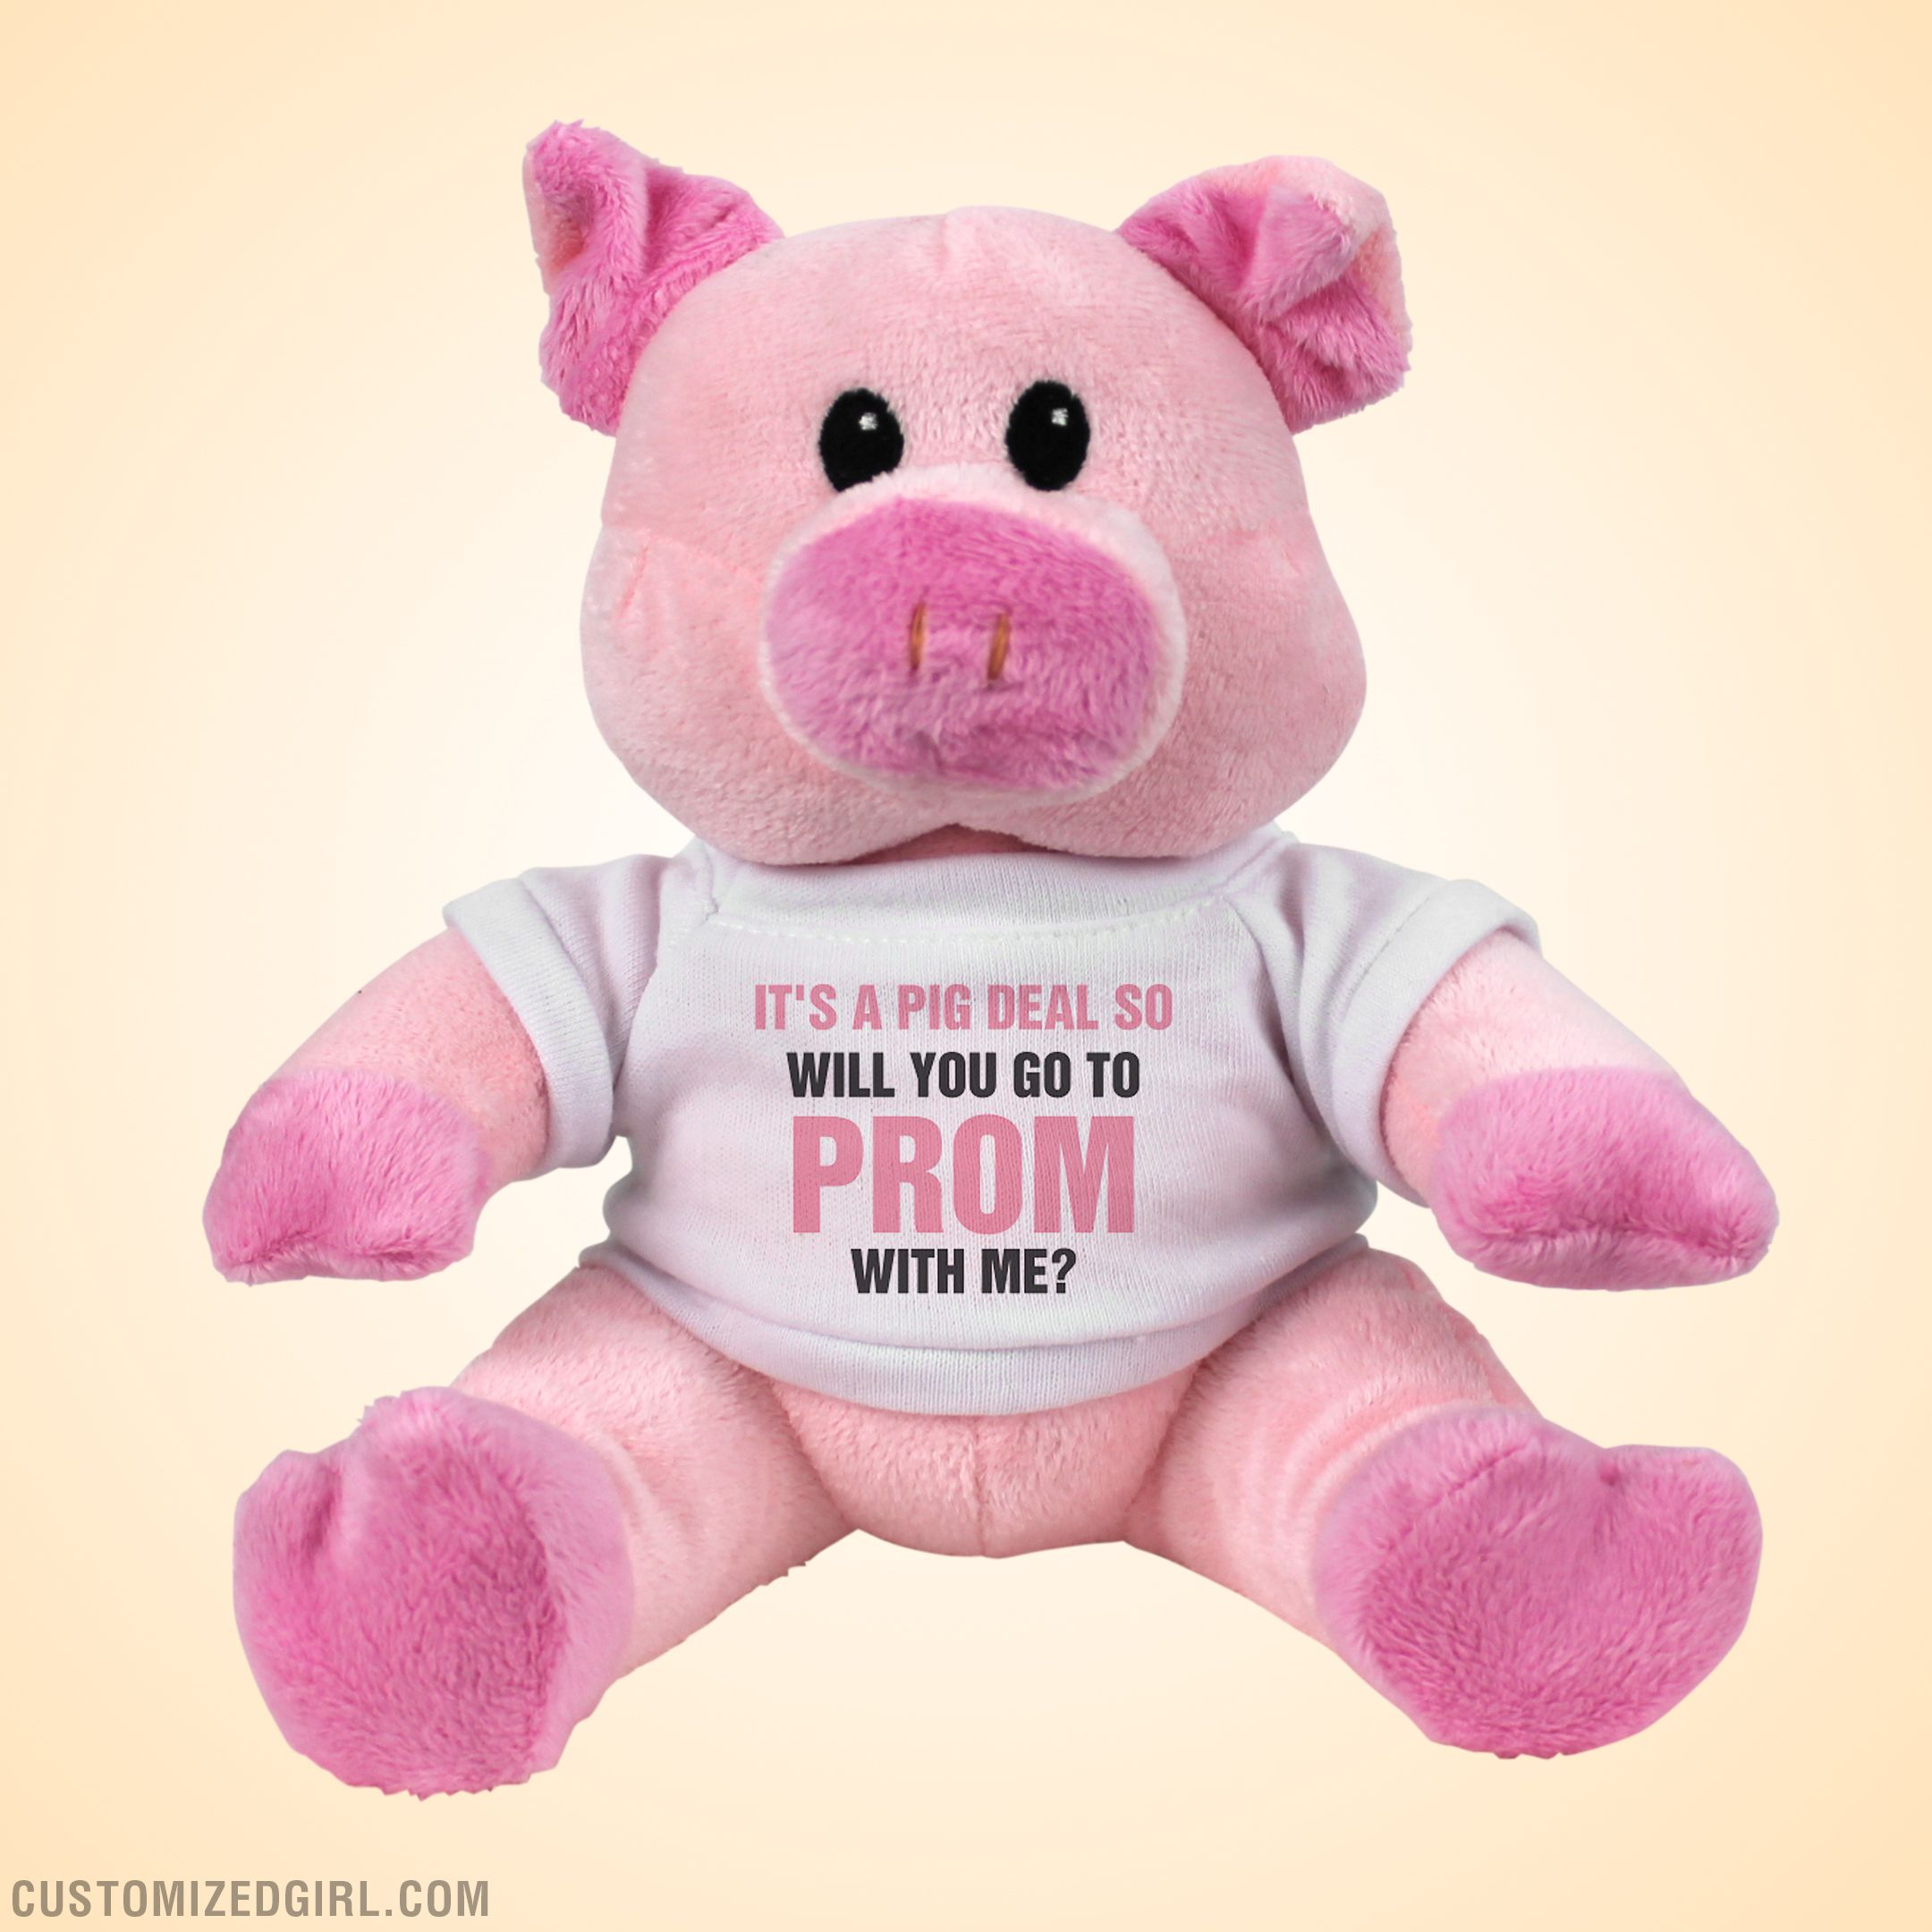 cute promposal pig ask her prom pinterest promposal customized